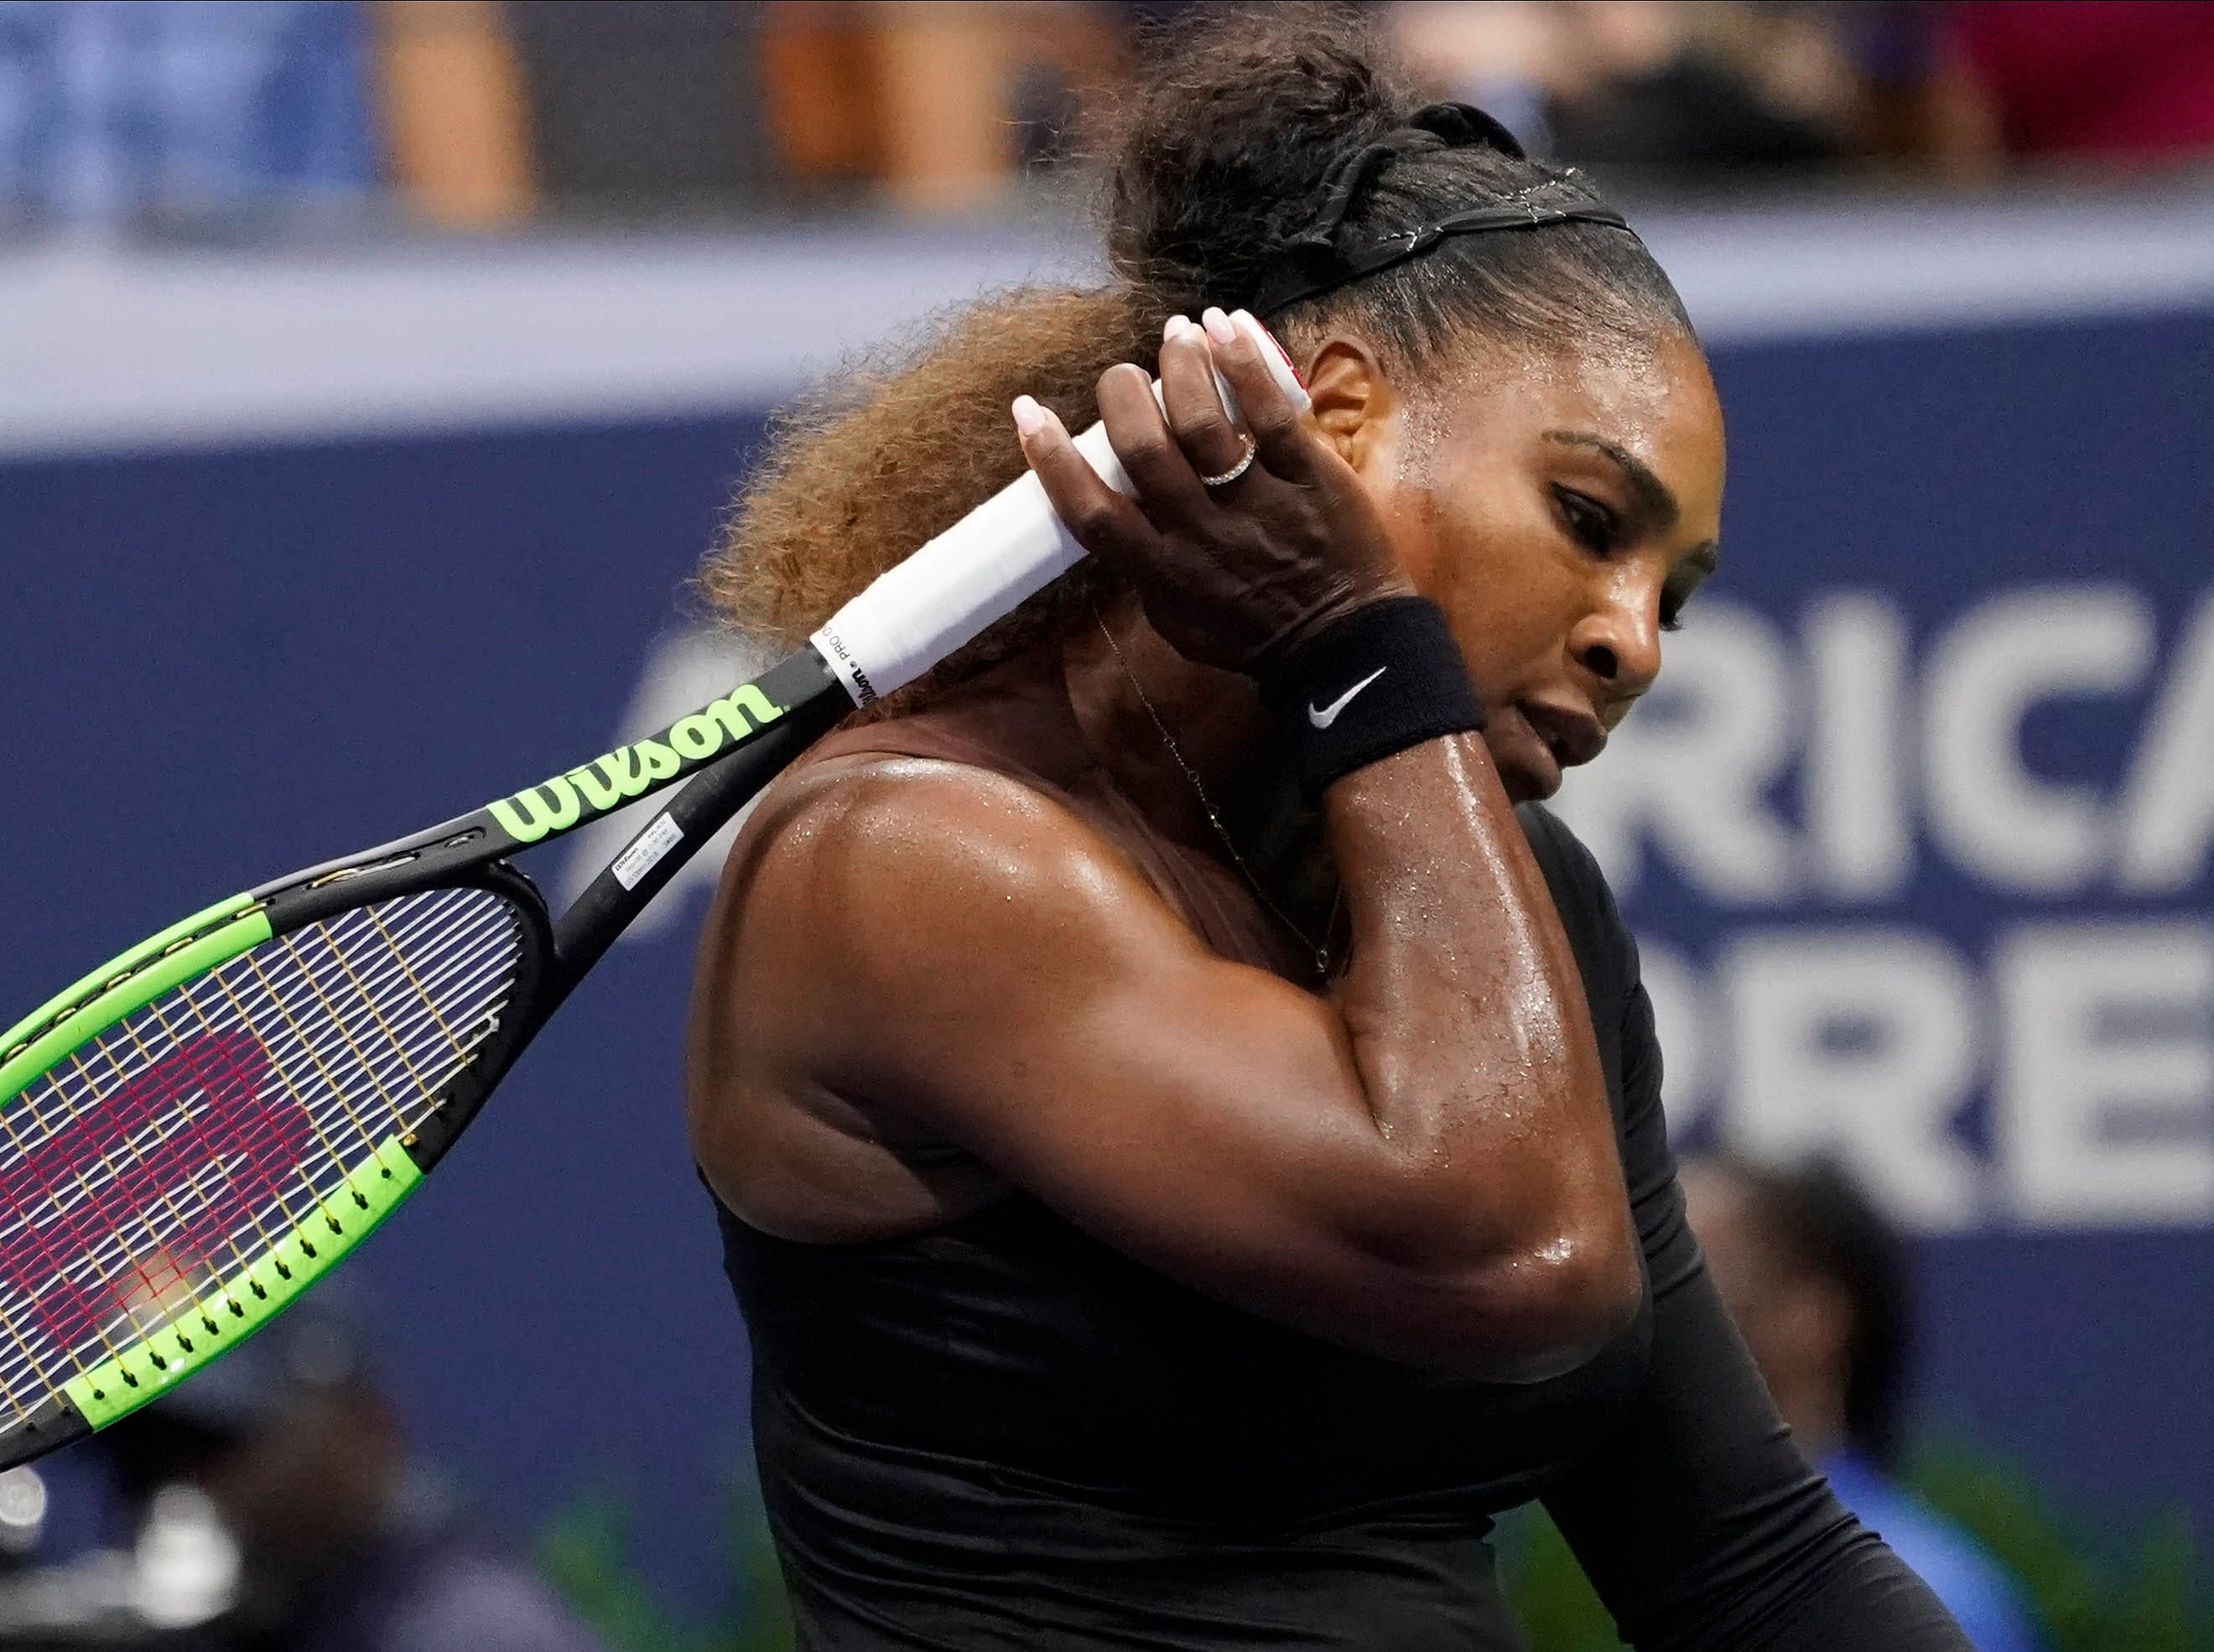 Serena Williams reacts after losing the first set to Naomi Osaka.